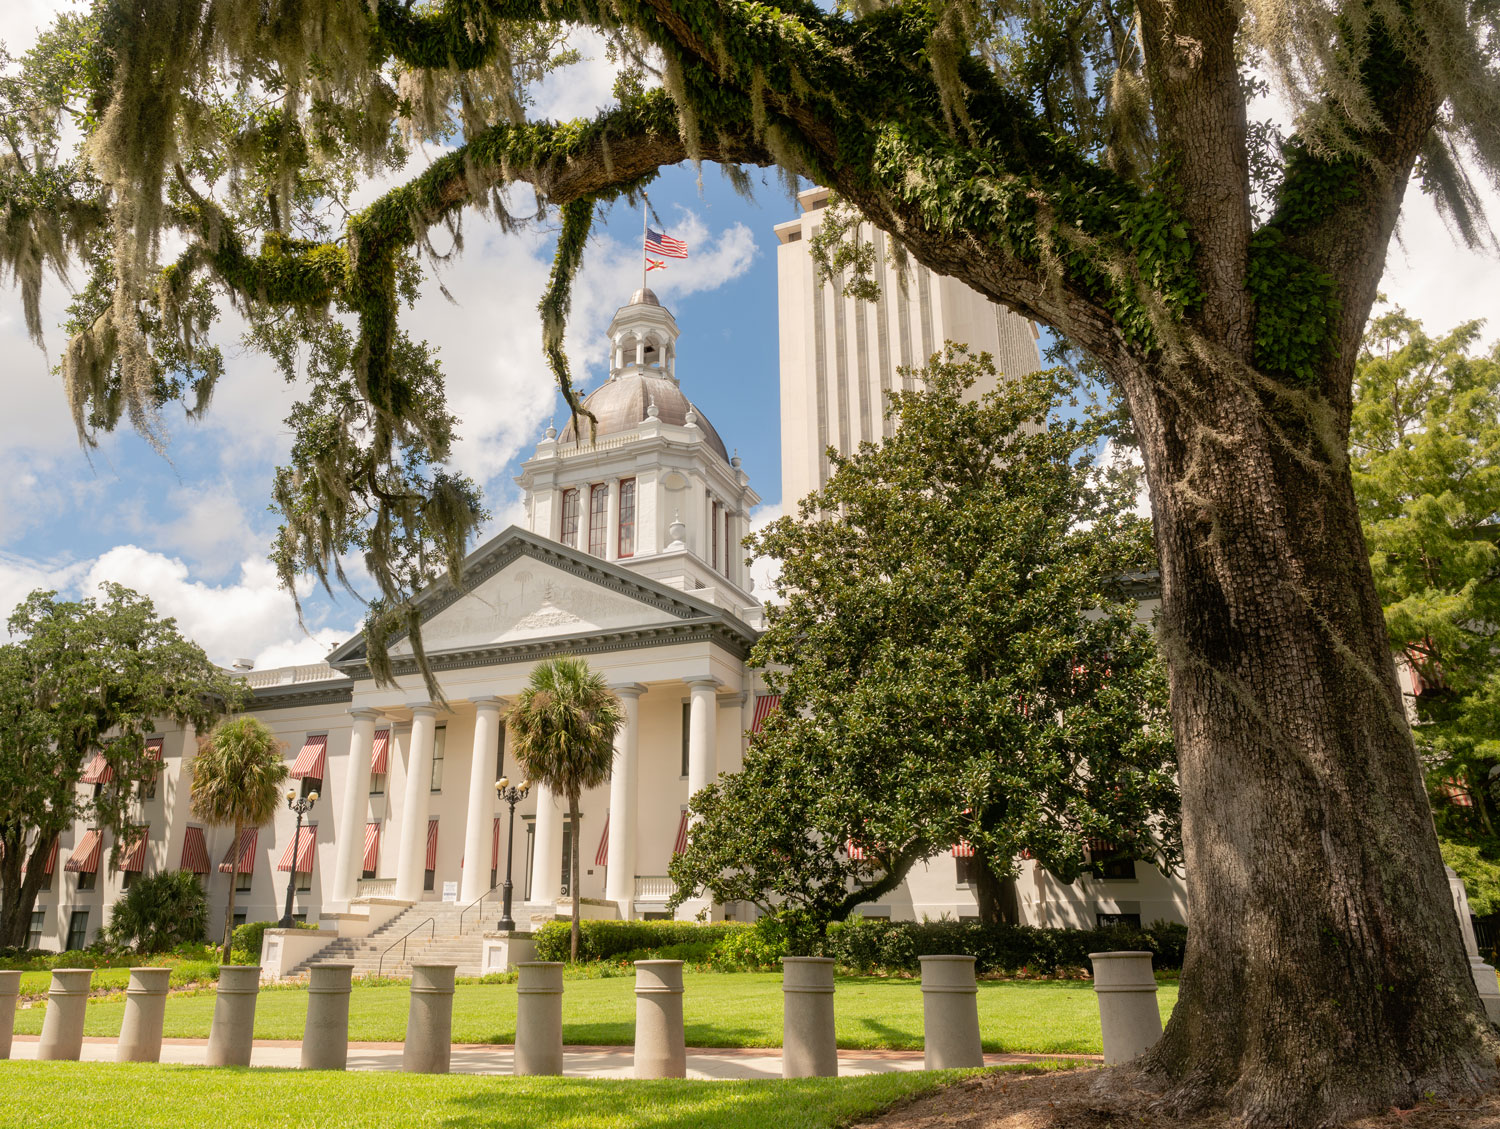 Florida's Capital Building in Tallahassee